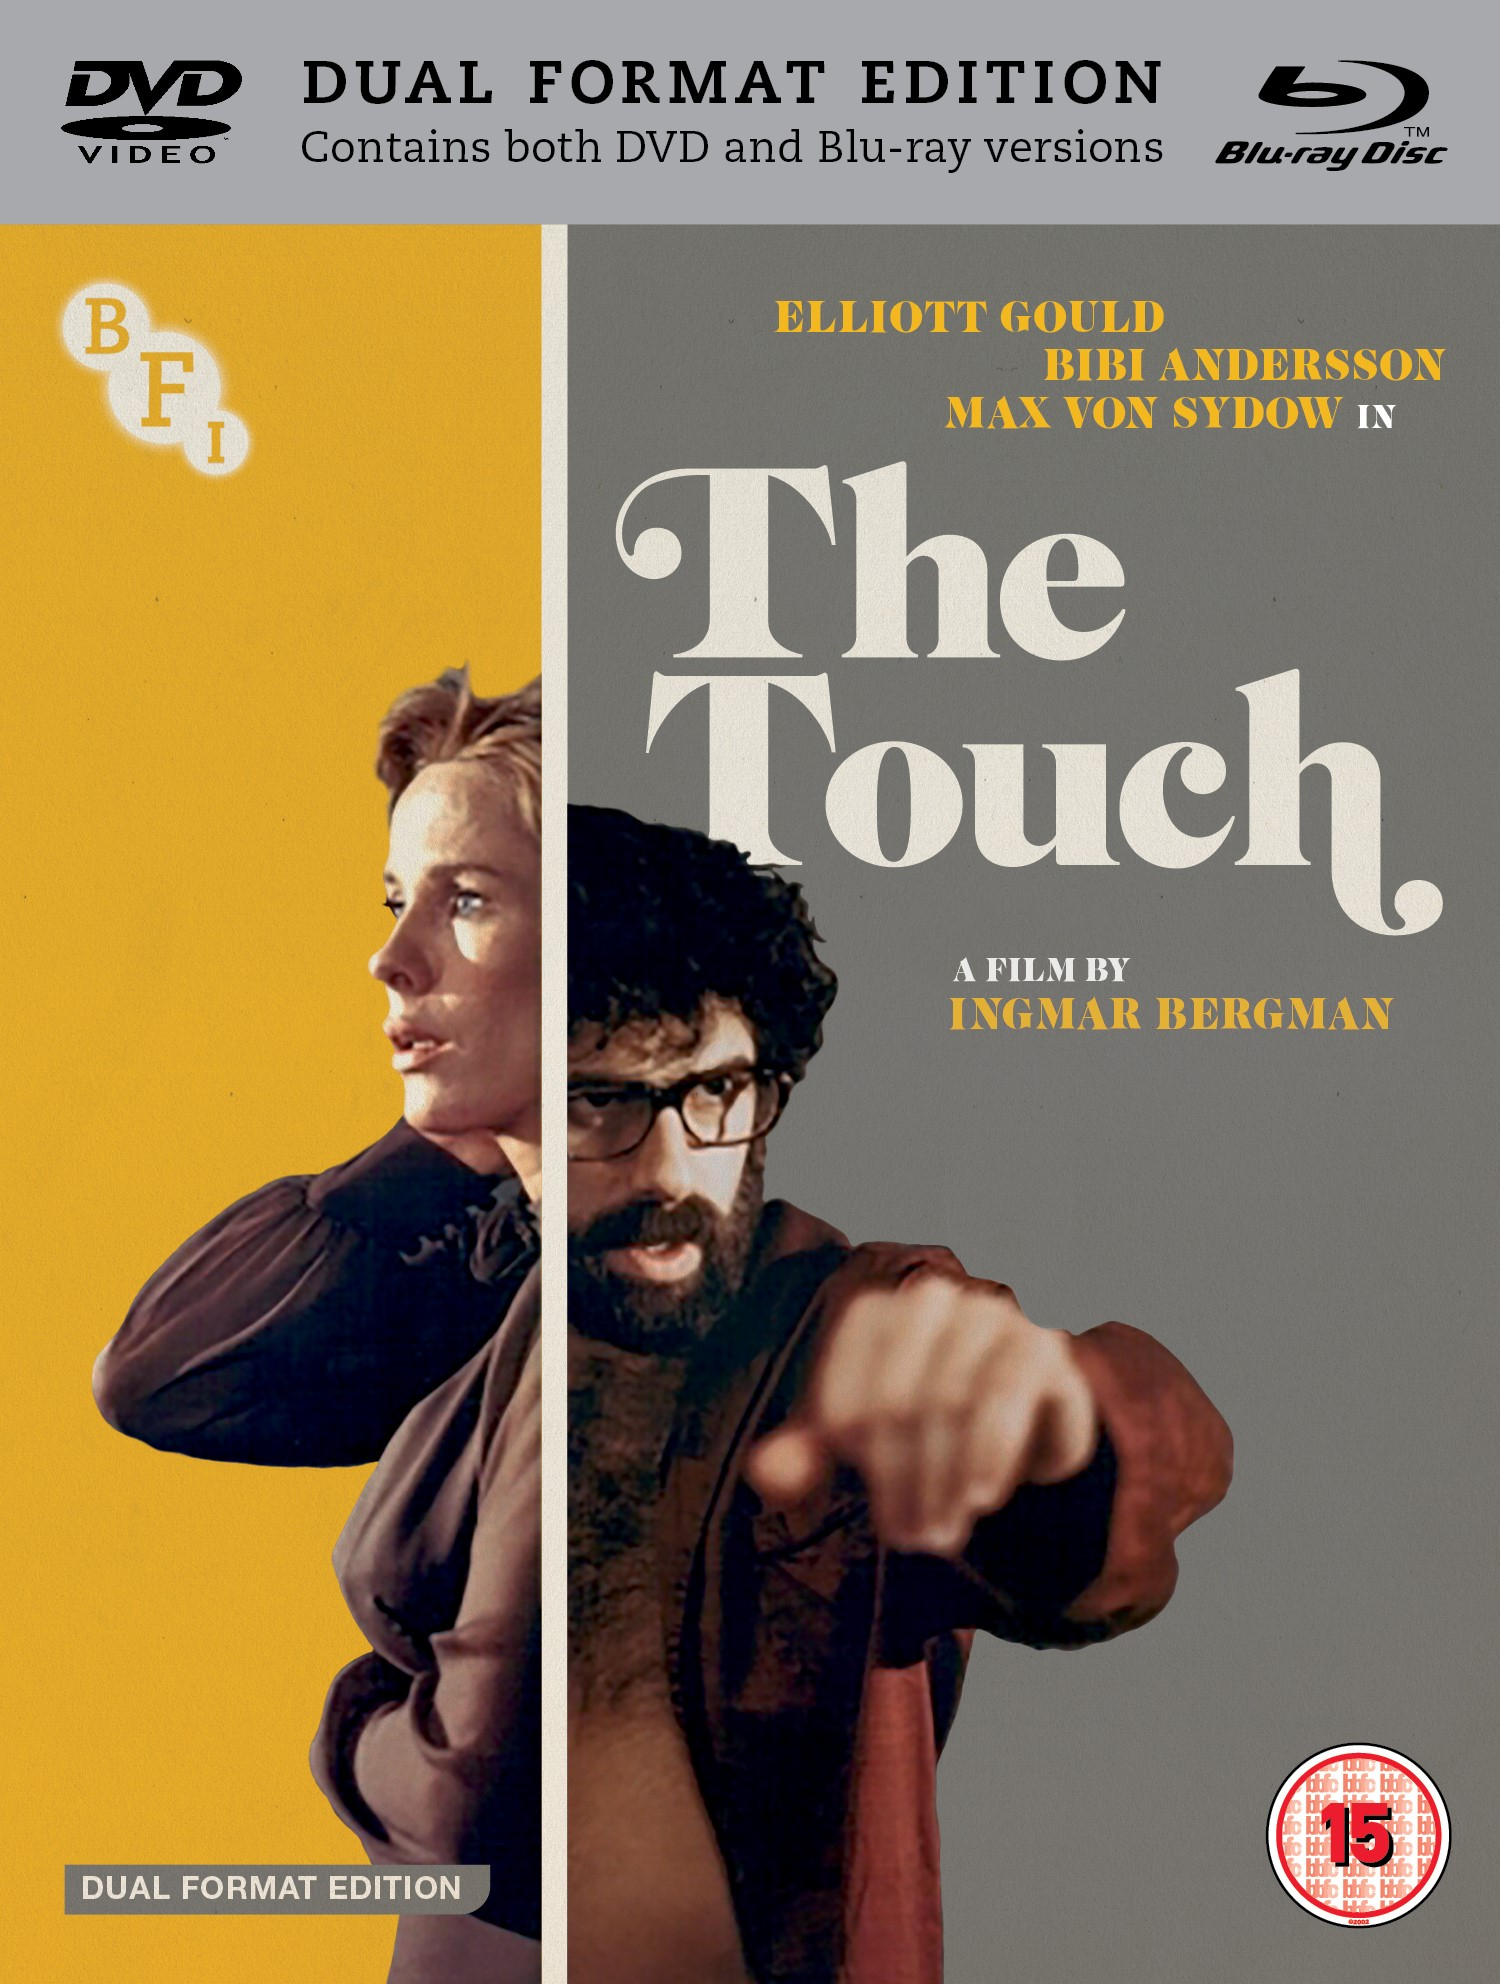 Buy PRE-ORDER The Touch (Dual Format Edition)